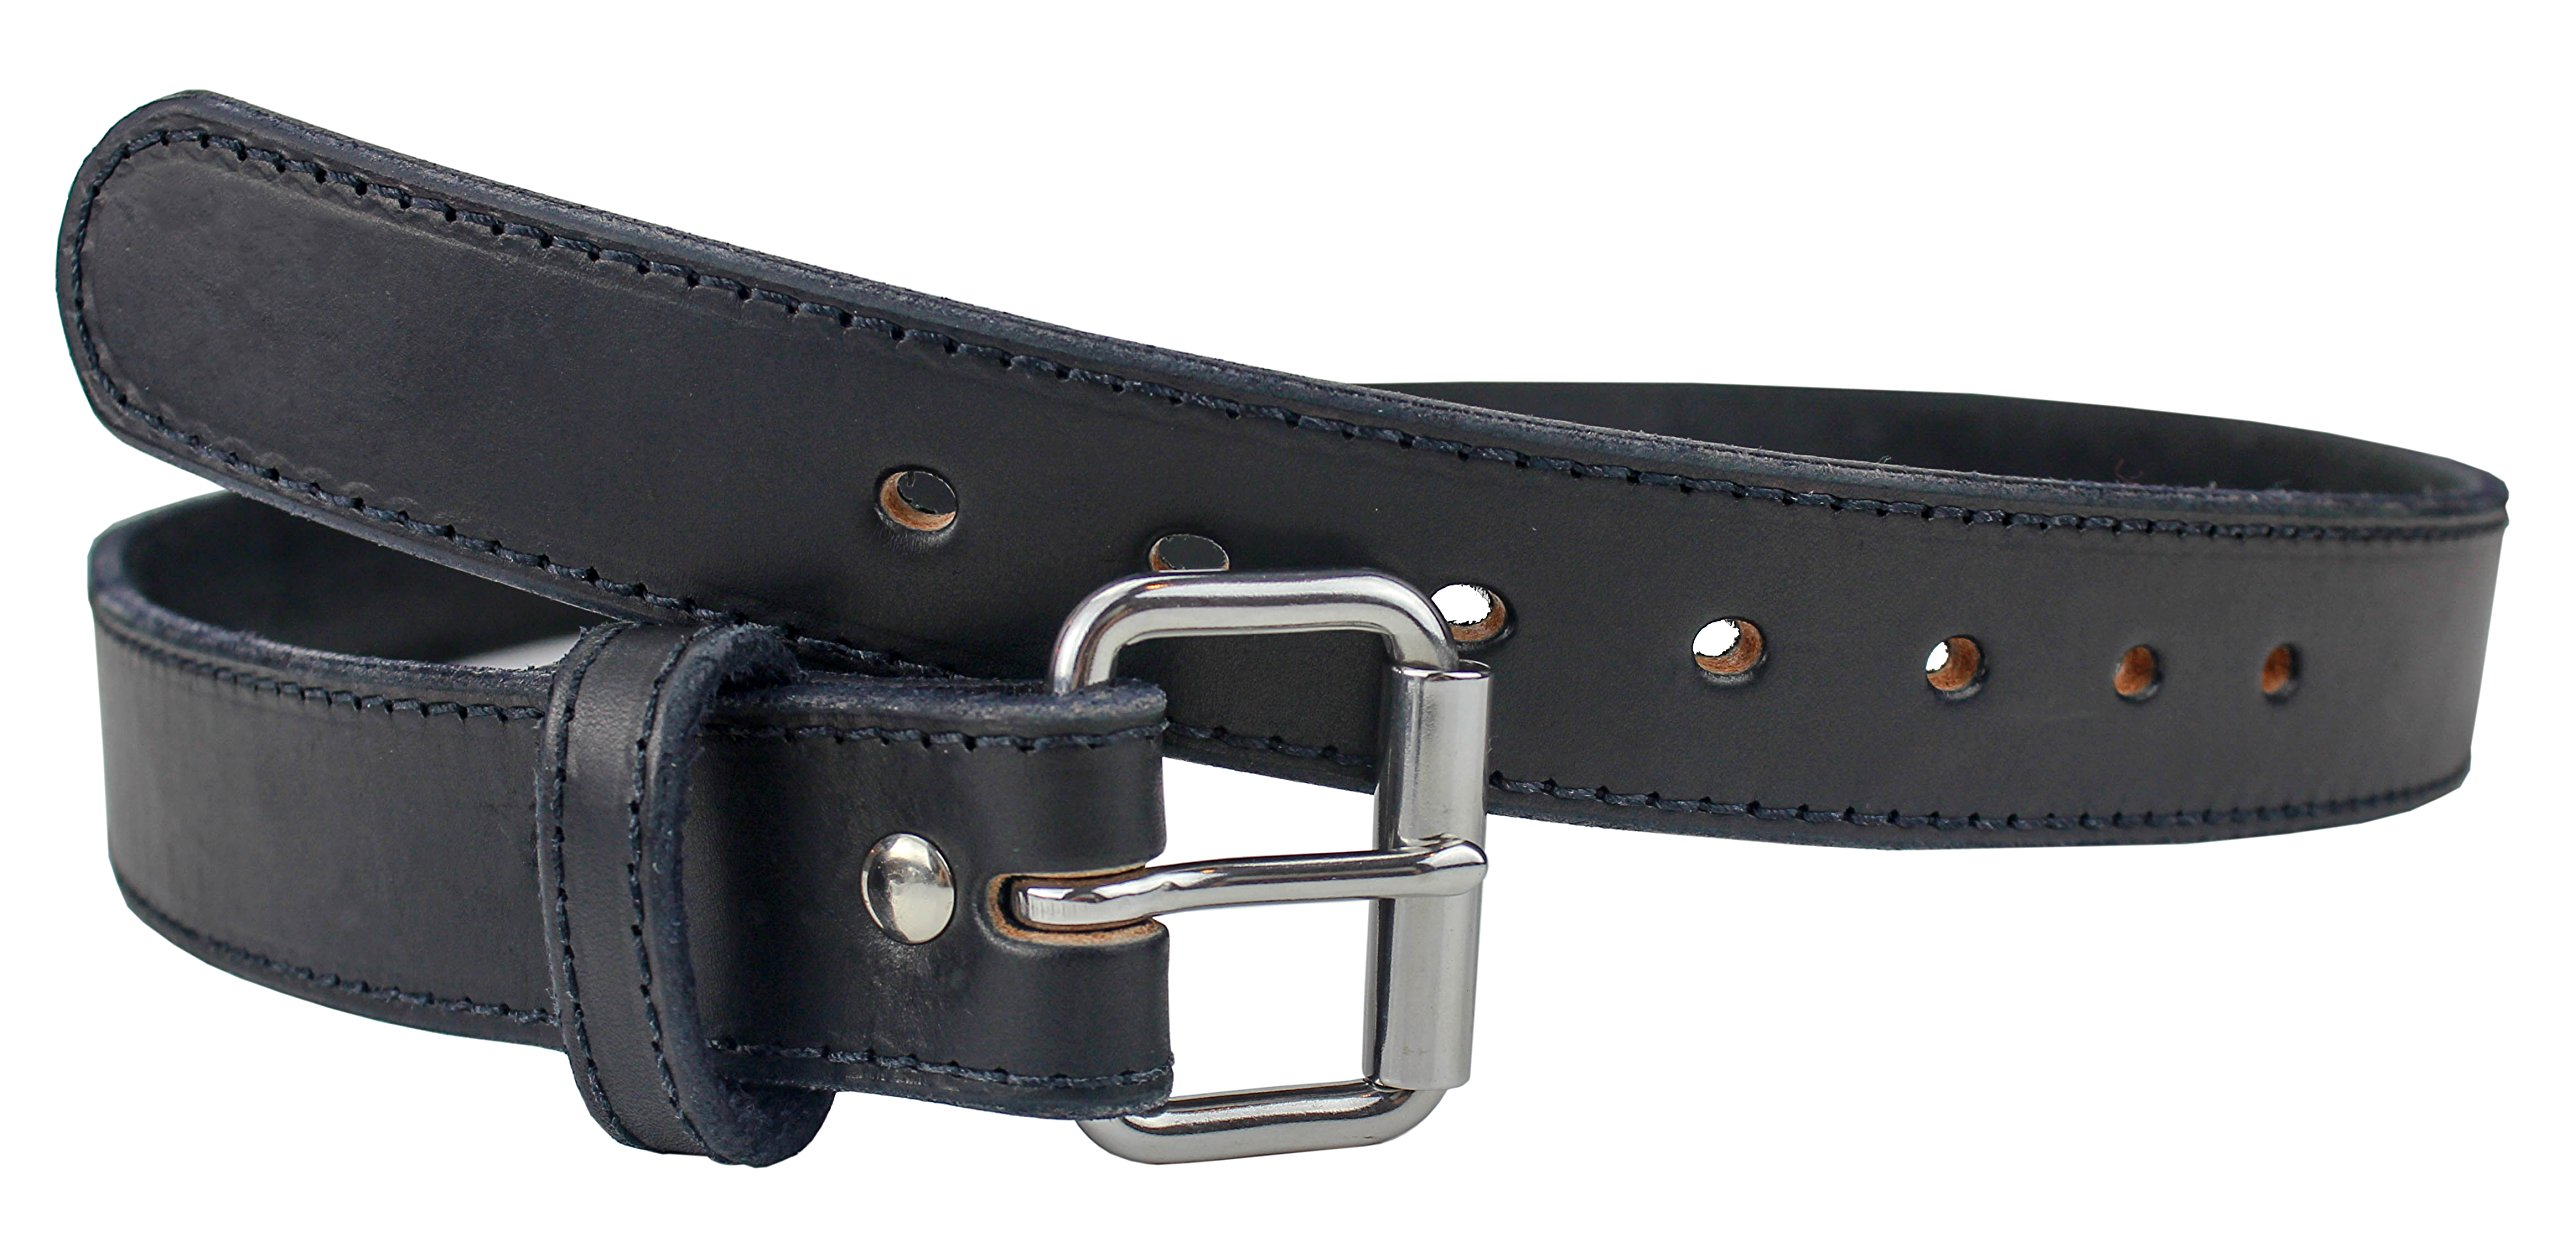 The Ultimate Steel Core Gun Belt | Concealed Carry CCW Leather Gun Belt With Steel Insert | Made in the USA | The Toughest 1 1/2 inch Premium Heavy Duty Leather Gun Belt | Black 40